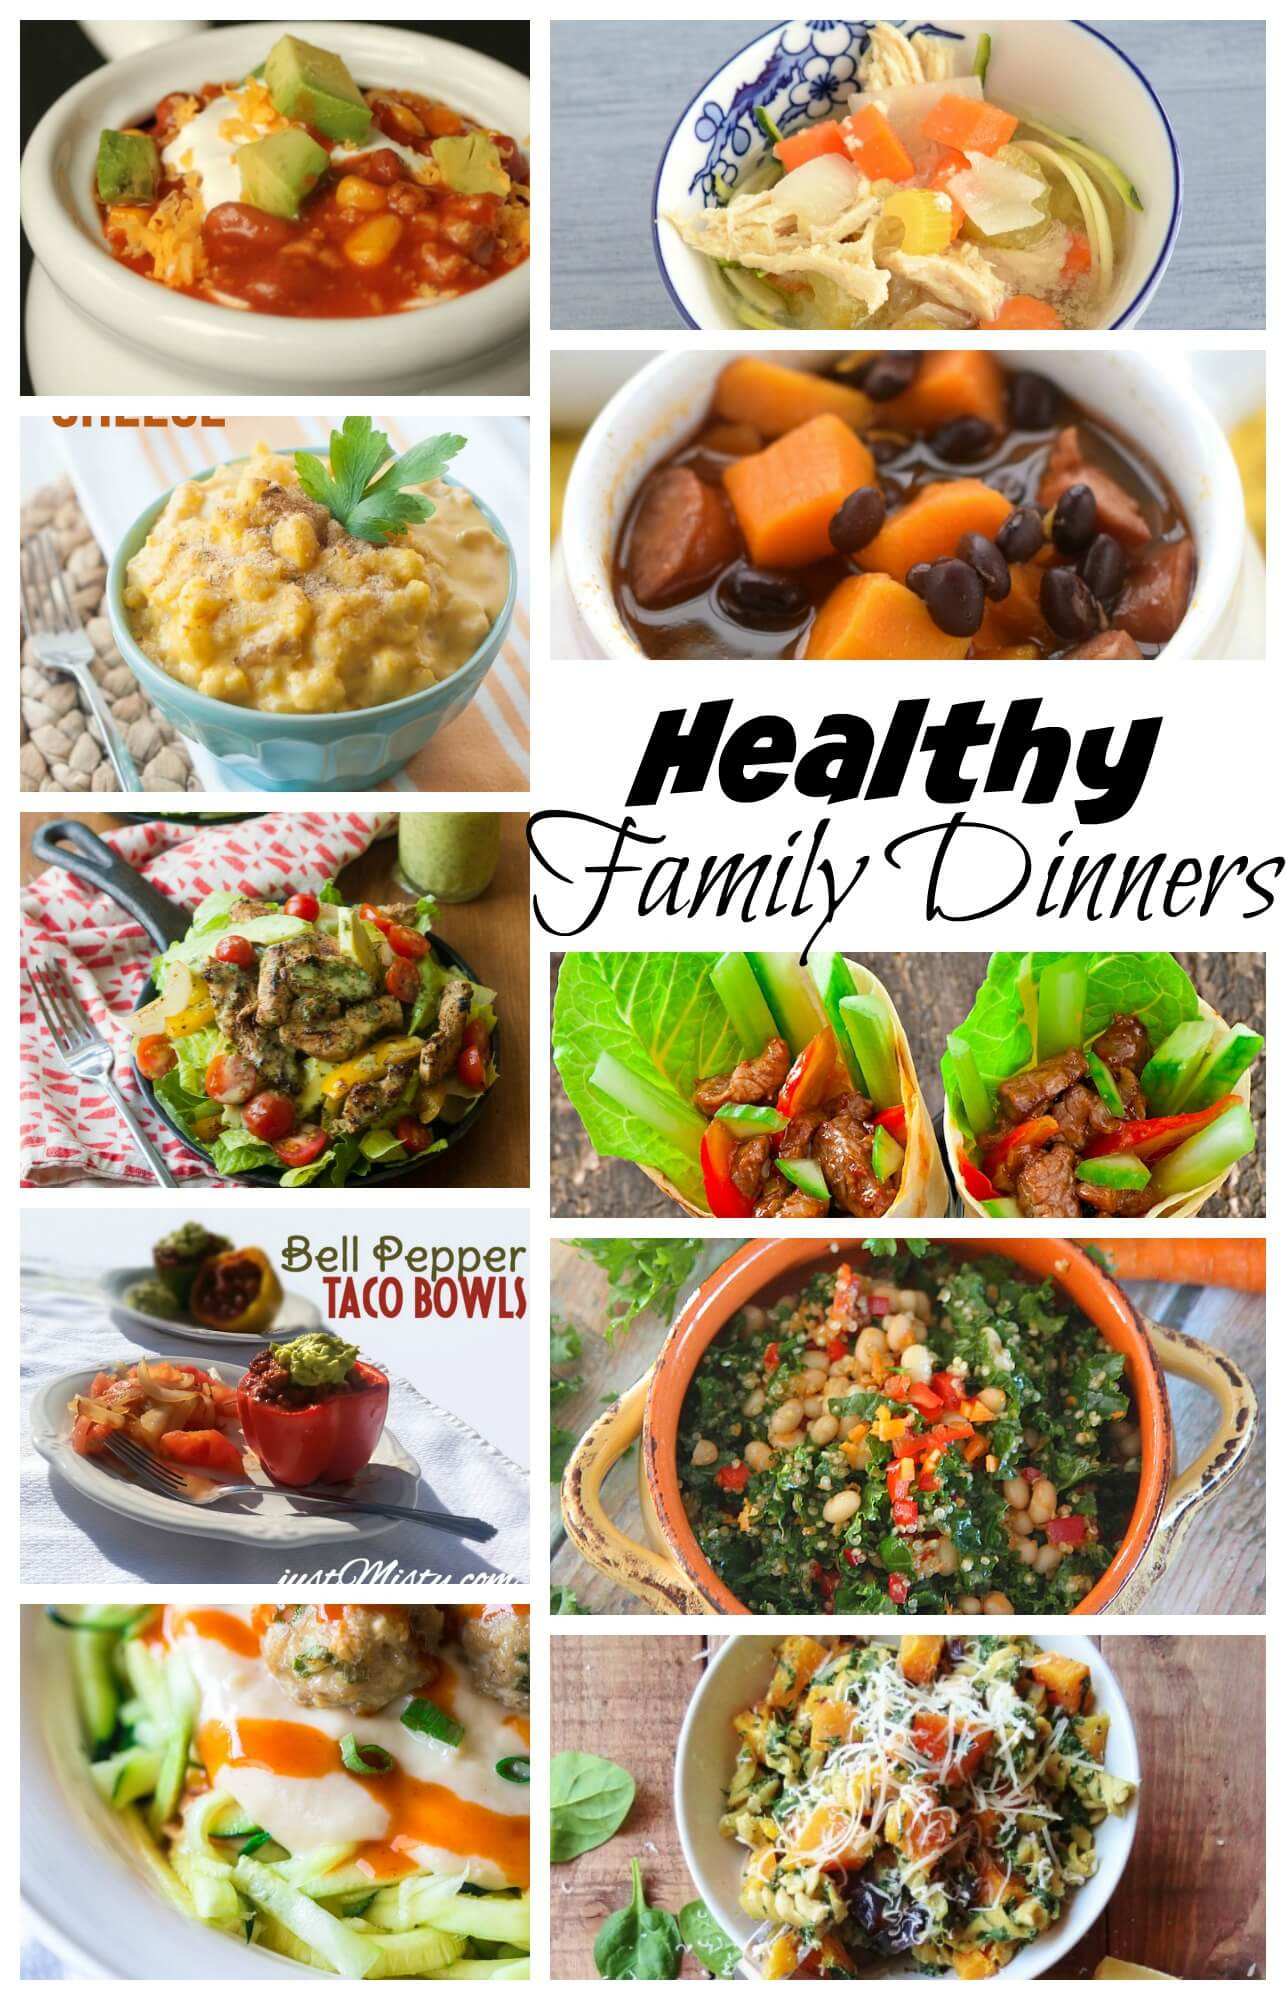 Healthy Family Dinner Recipes  Healthy Family Dinner Recipes Life Sew Savory